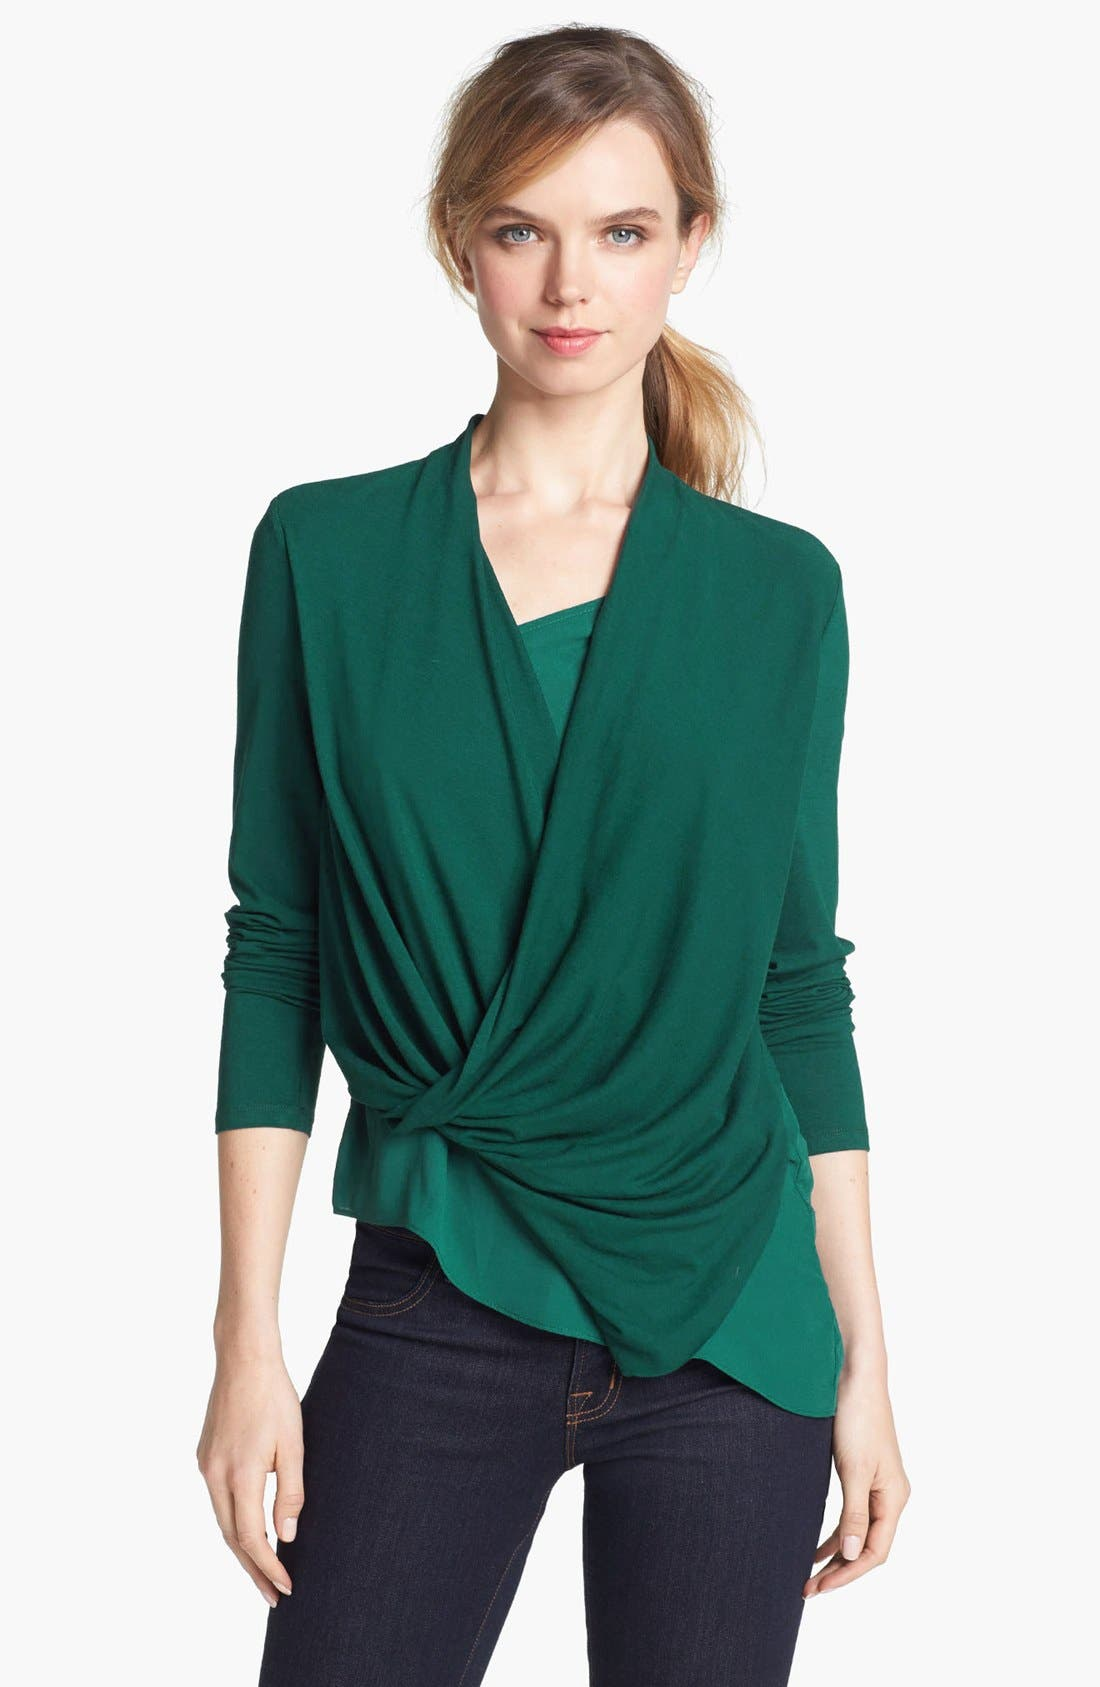 Main Image - Vince Camuto Mixed Media Wrap Top (Online Exclusive)